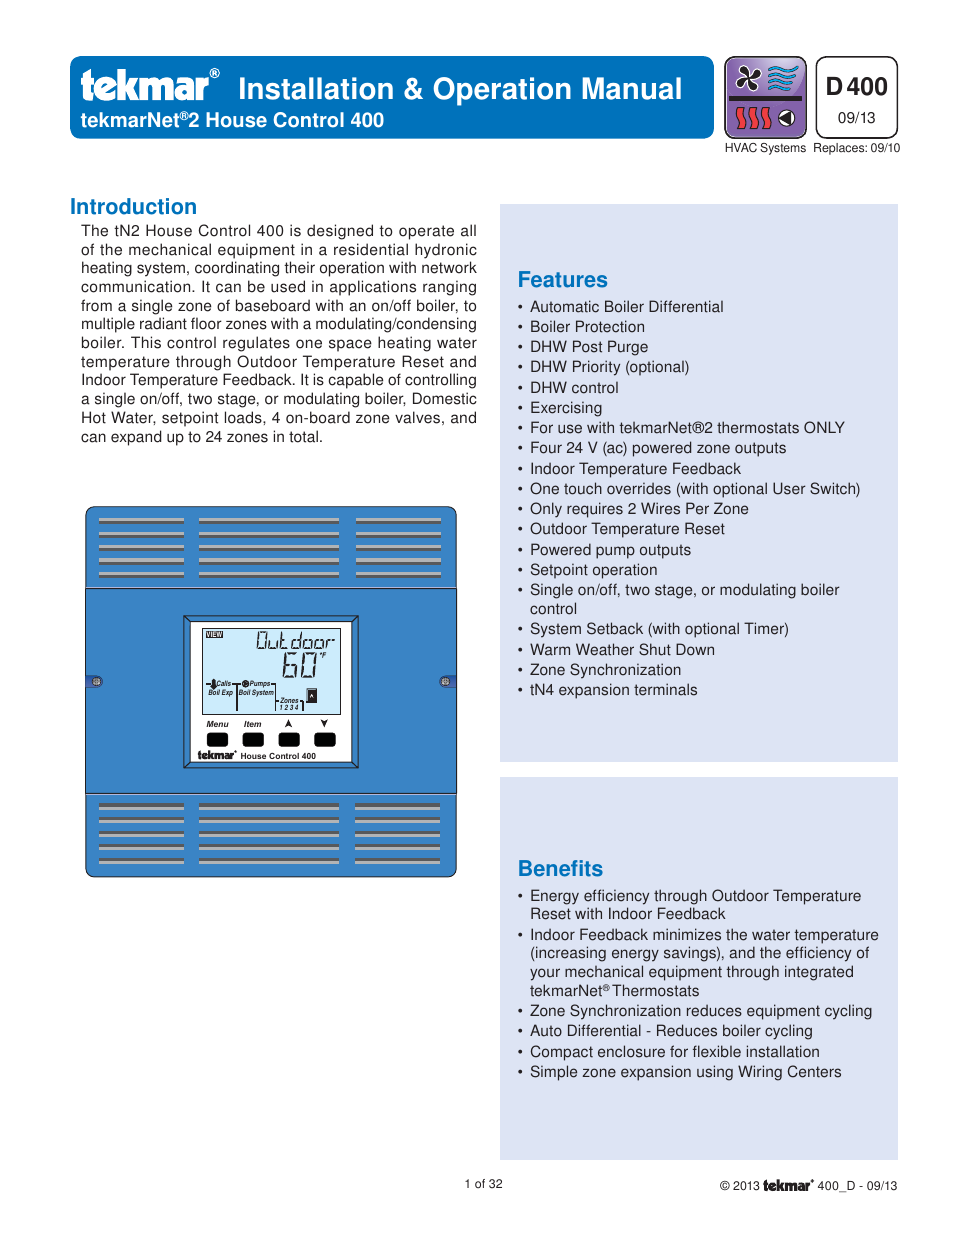 tekmar 400 House Control Installation User Manual | 32 pages